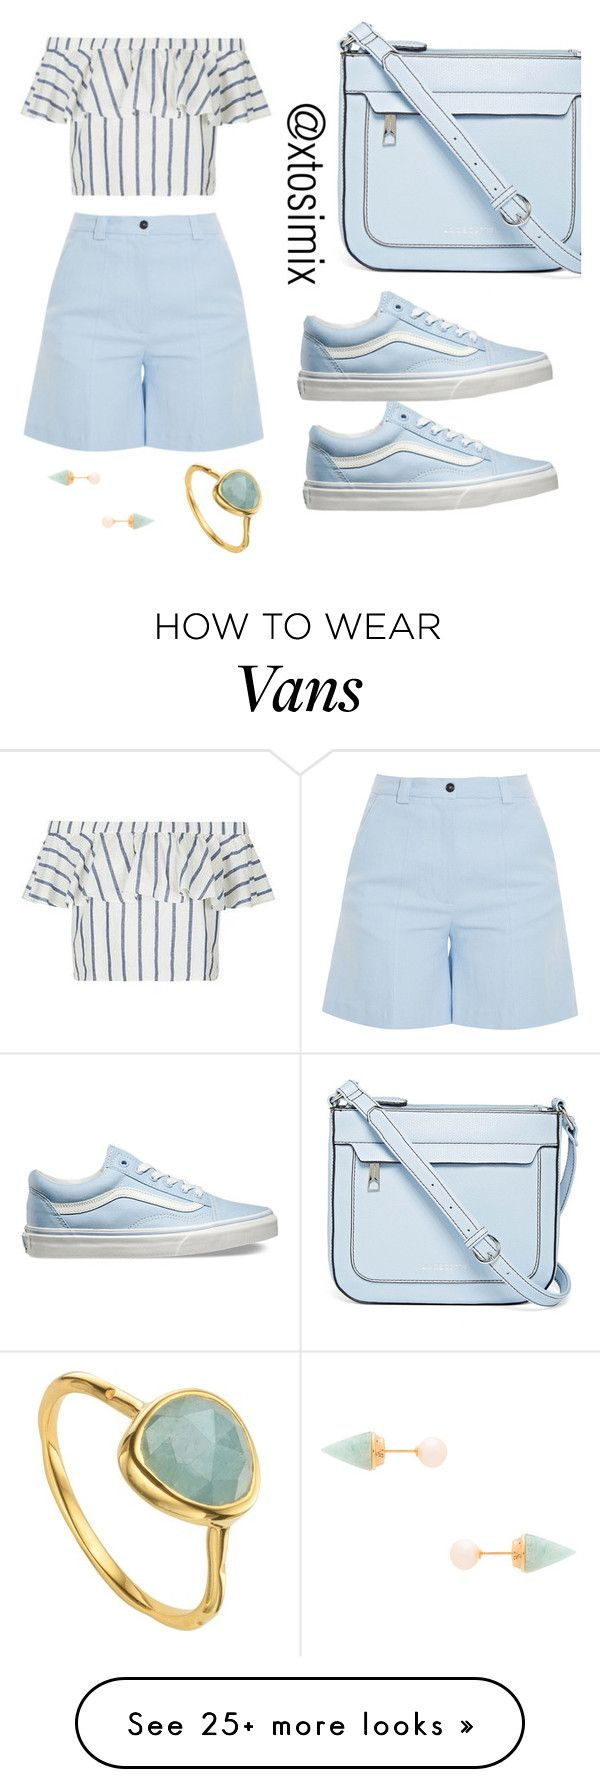 """Untitled #66"" by ayotosimi-falomo on Polyvore featuring Liz Claiborne, Vans, Acne Studios, Topshop, Vita Fede and Monica Vinader"